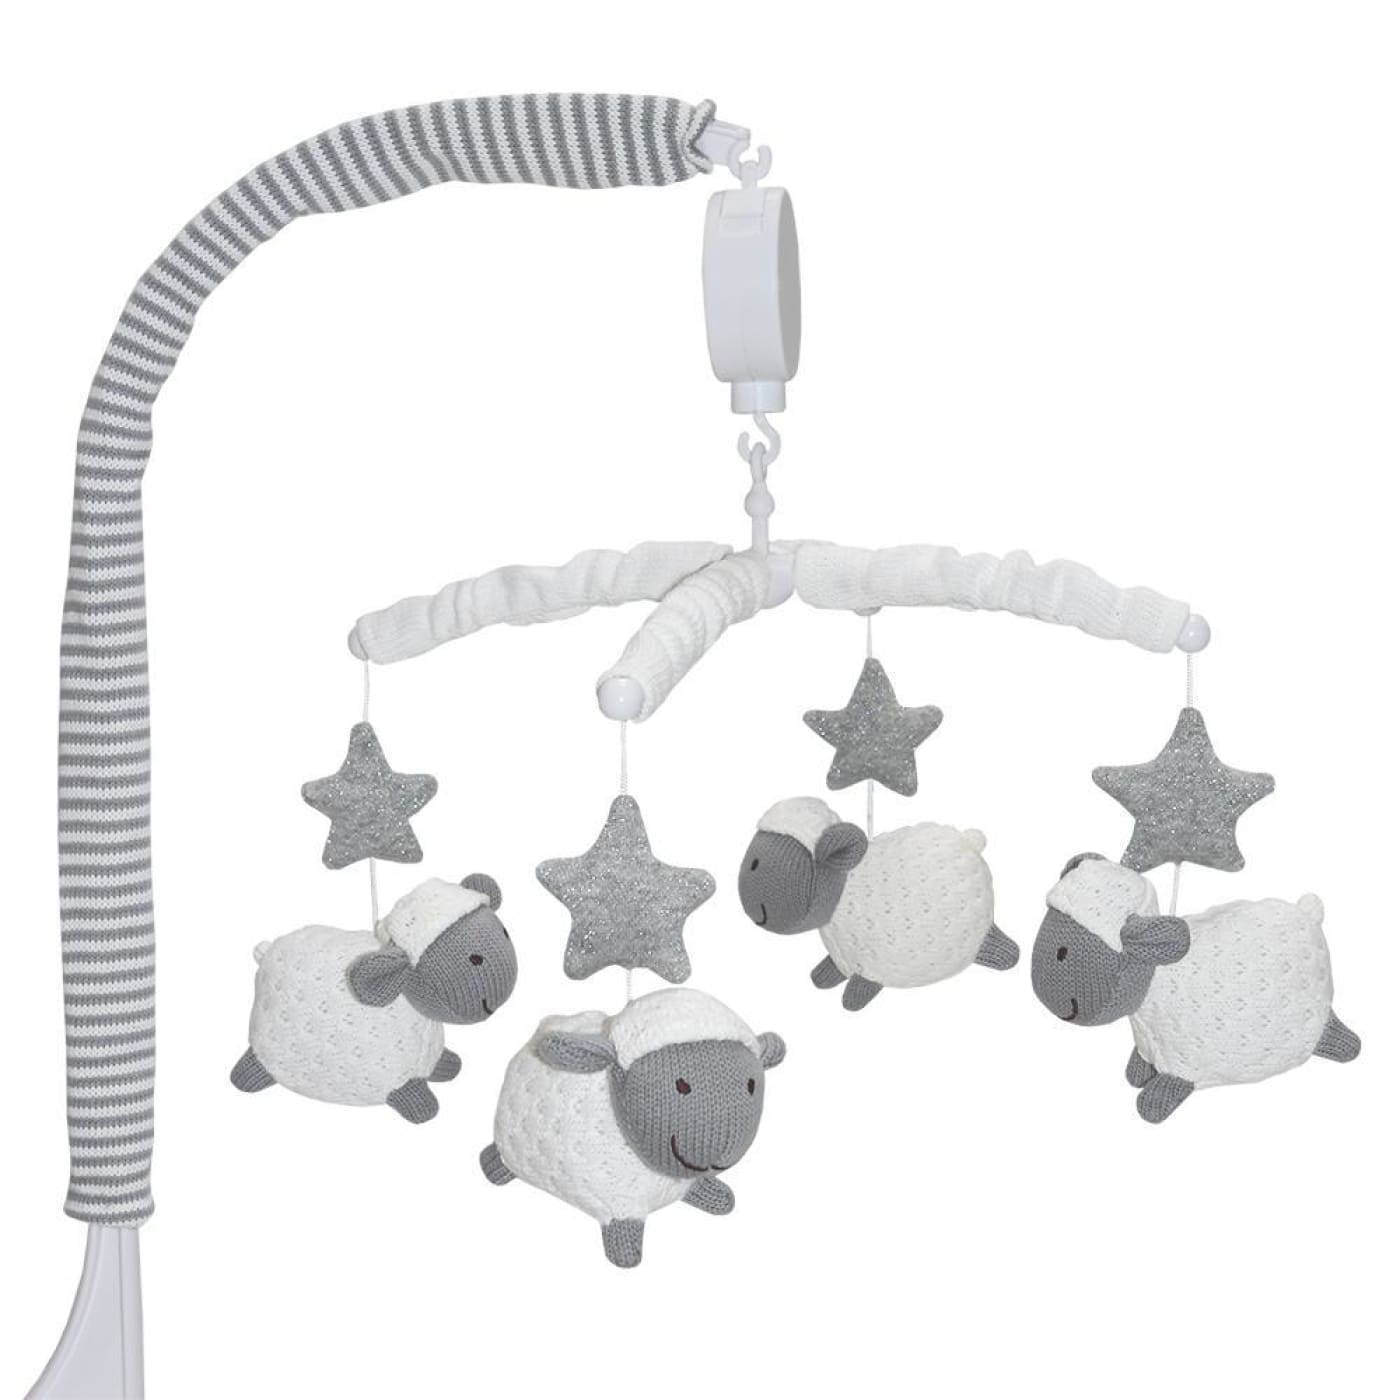 Living Textiles Musical Mobile Set - Sheep - NURSERY & BEDTIME - MOBILES